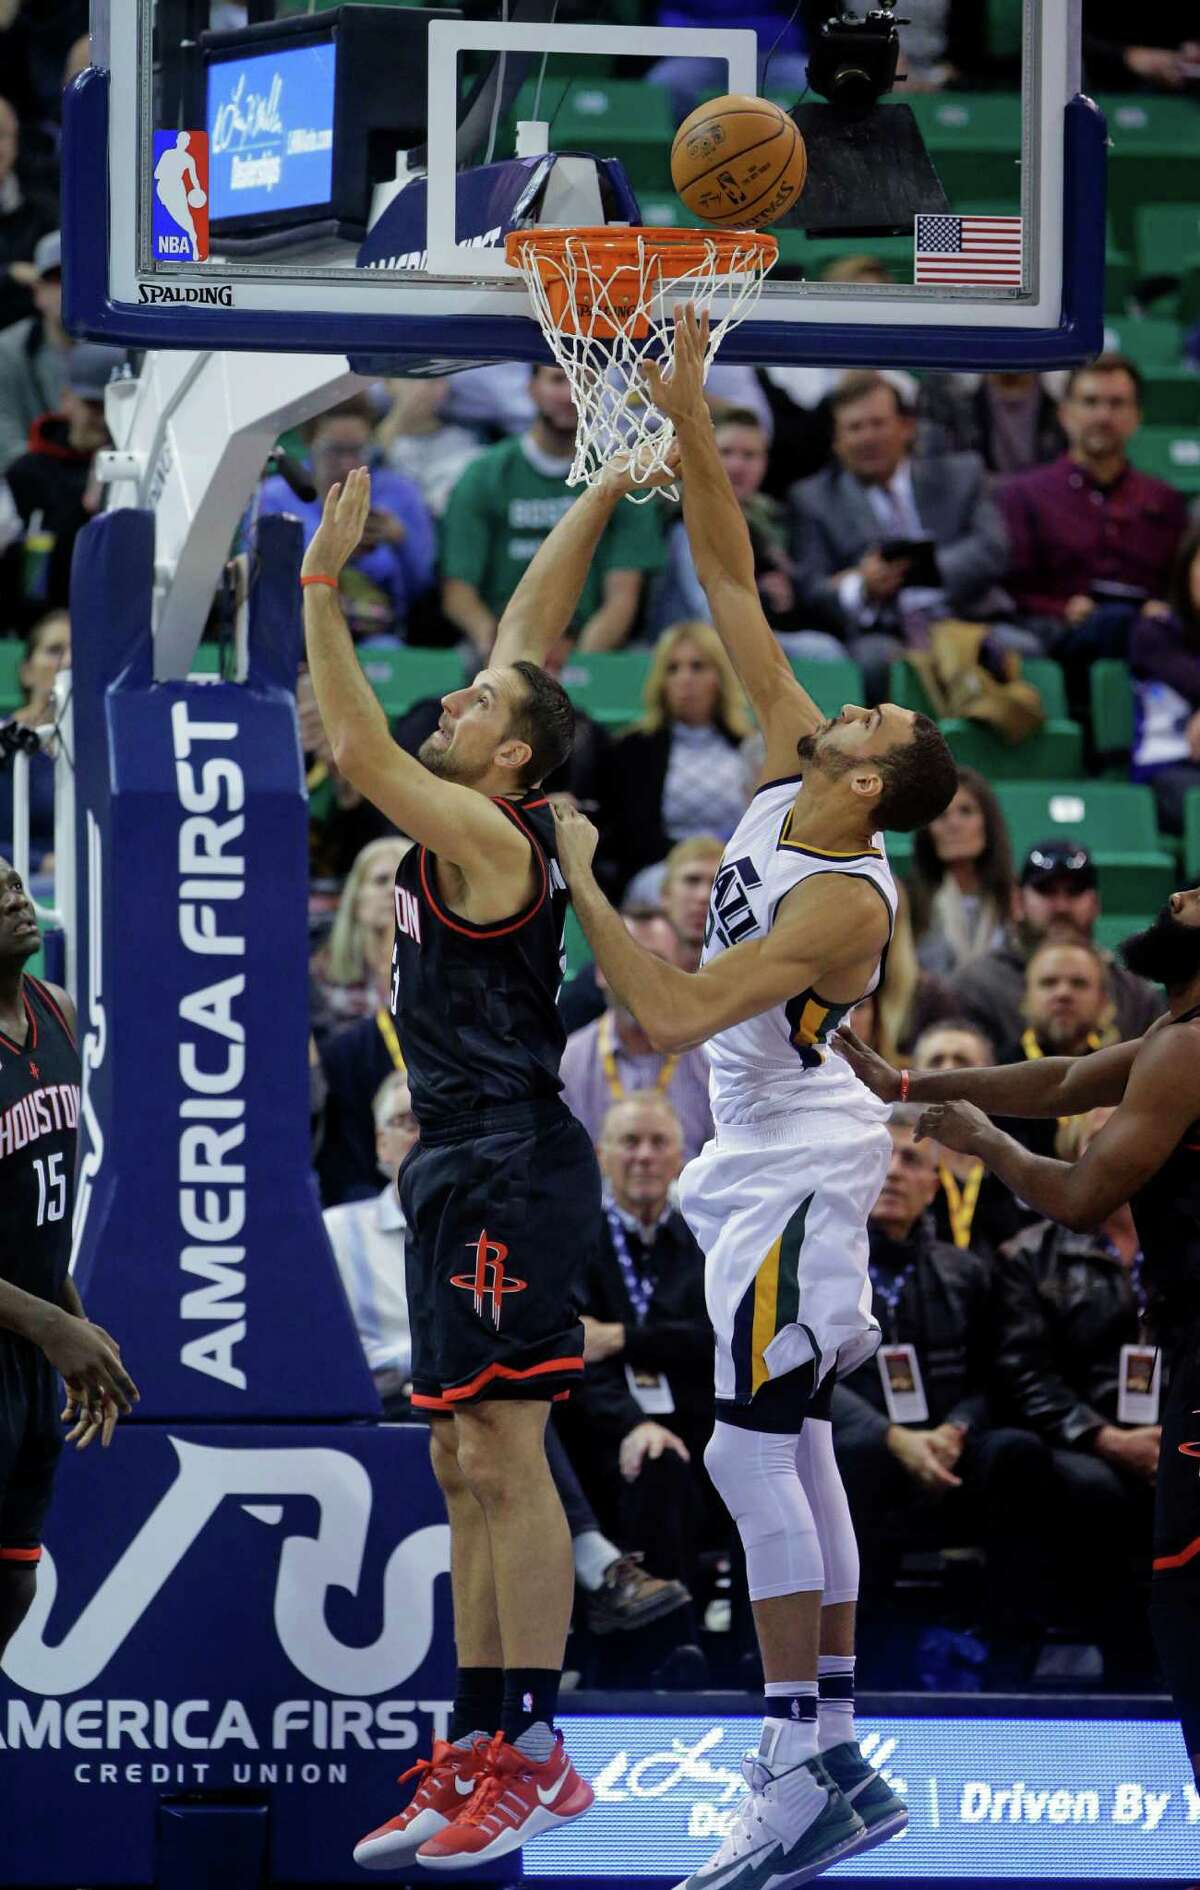 Houston Rockets forward Ryan Anderson, left, and Utah Jazz center Rudy Gobert battle for a rebound in the first half of an NBA basketball game Tuesday, Nov. 29, 2016, in Salt Lake City. (AP Photo/Rick Bowmer)